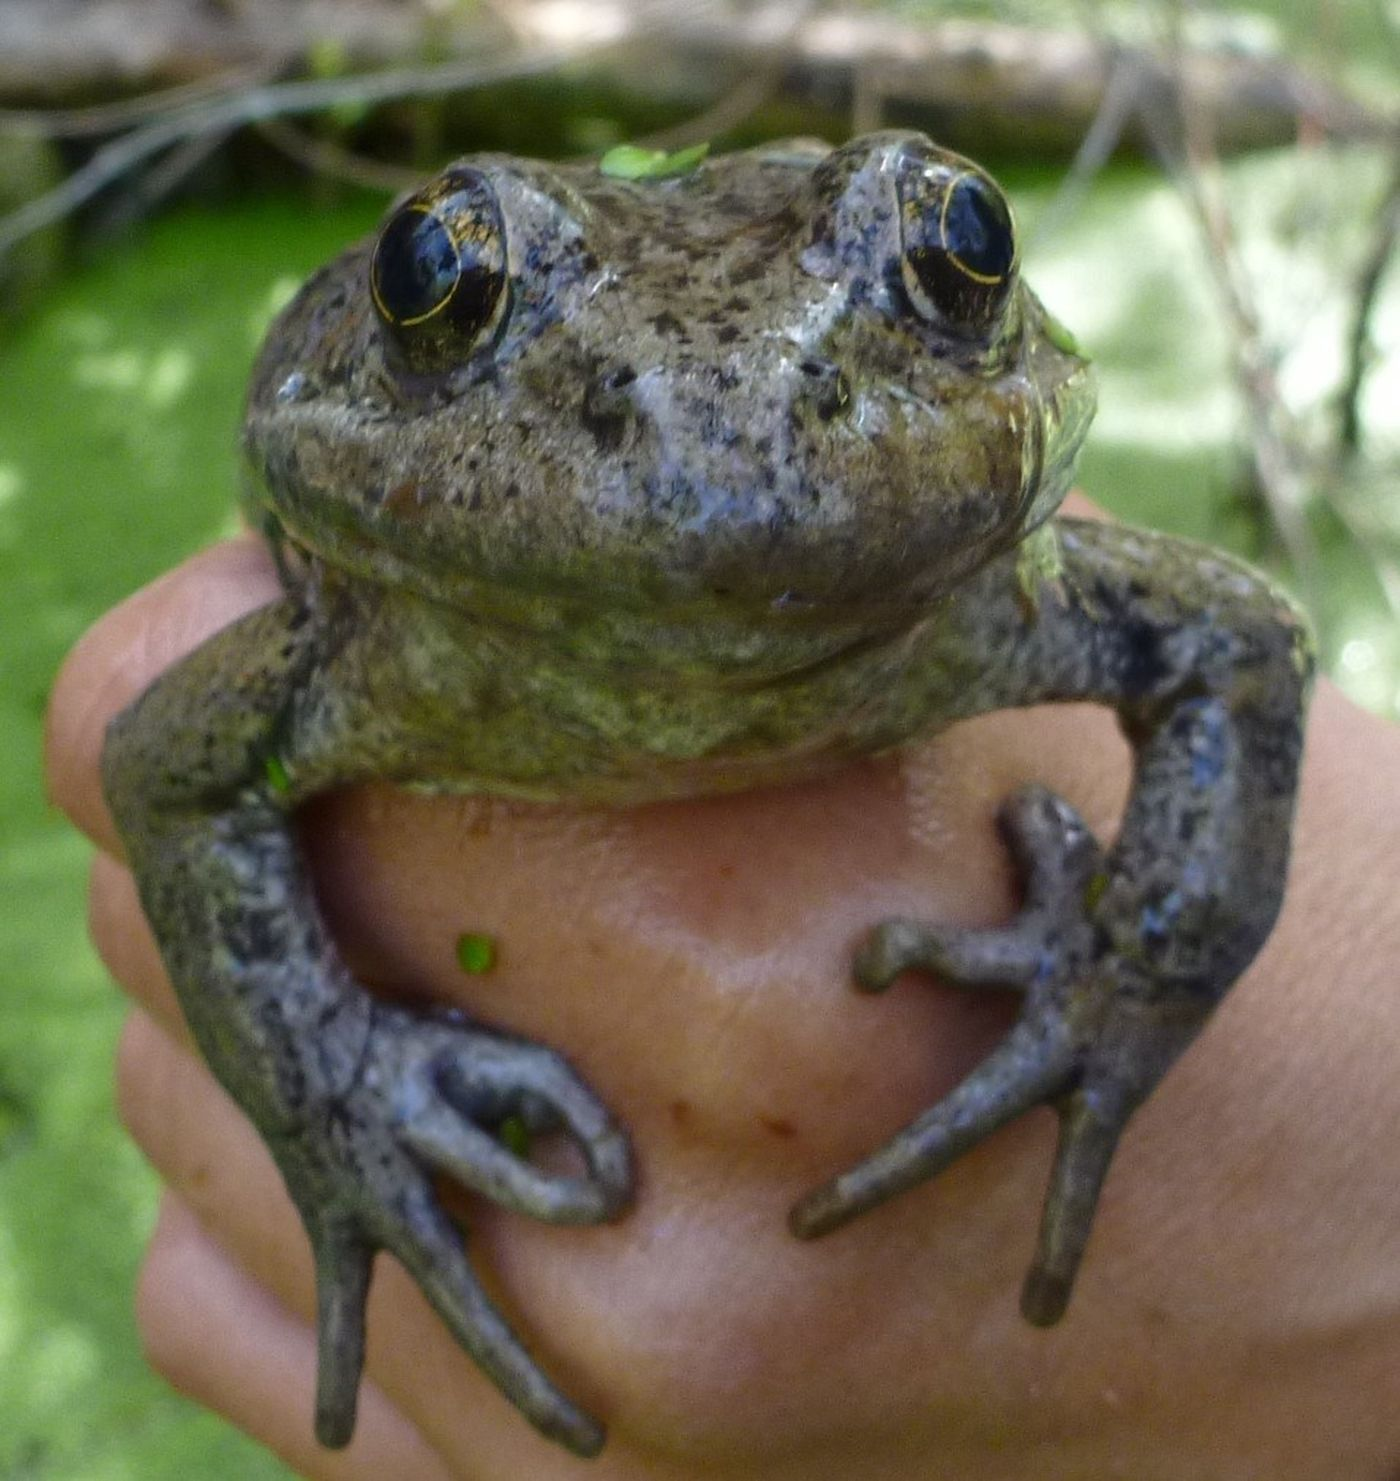 For the first time in almost 100 years, a rare frog population is ...